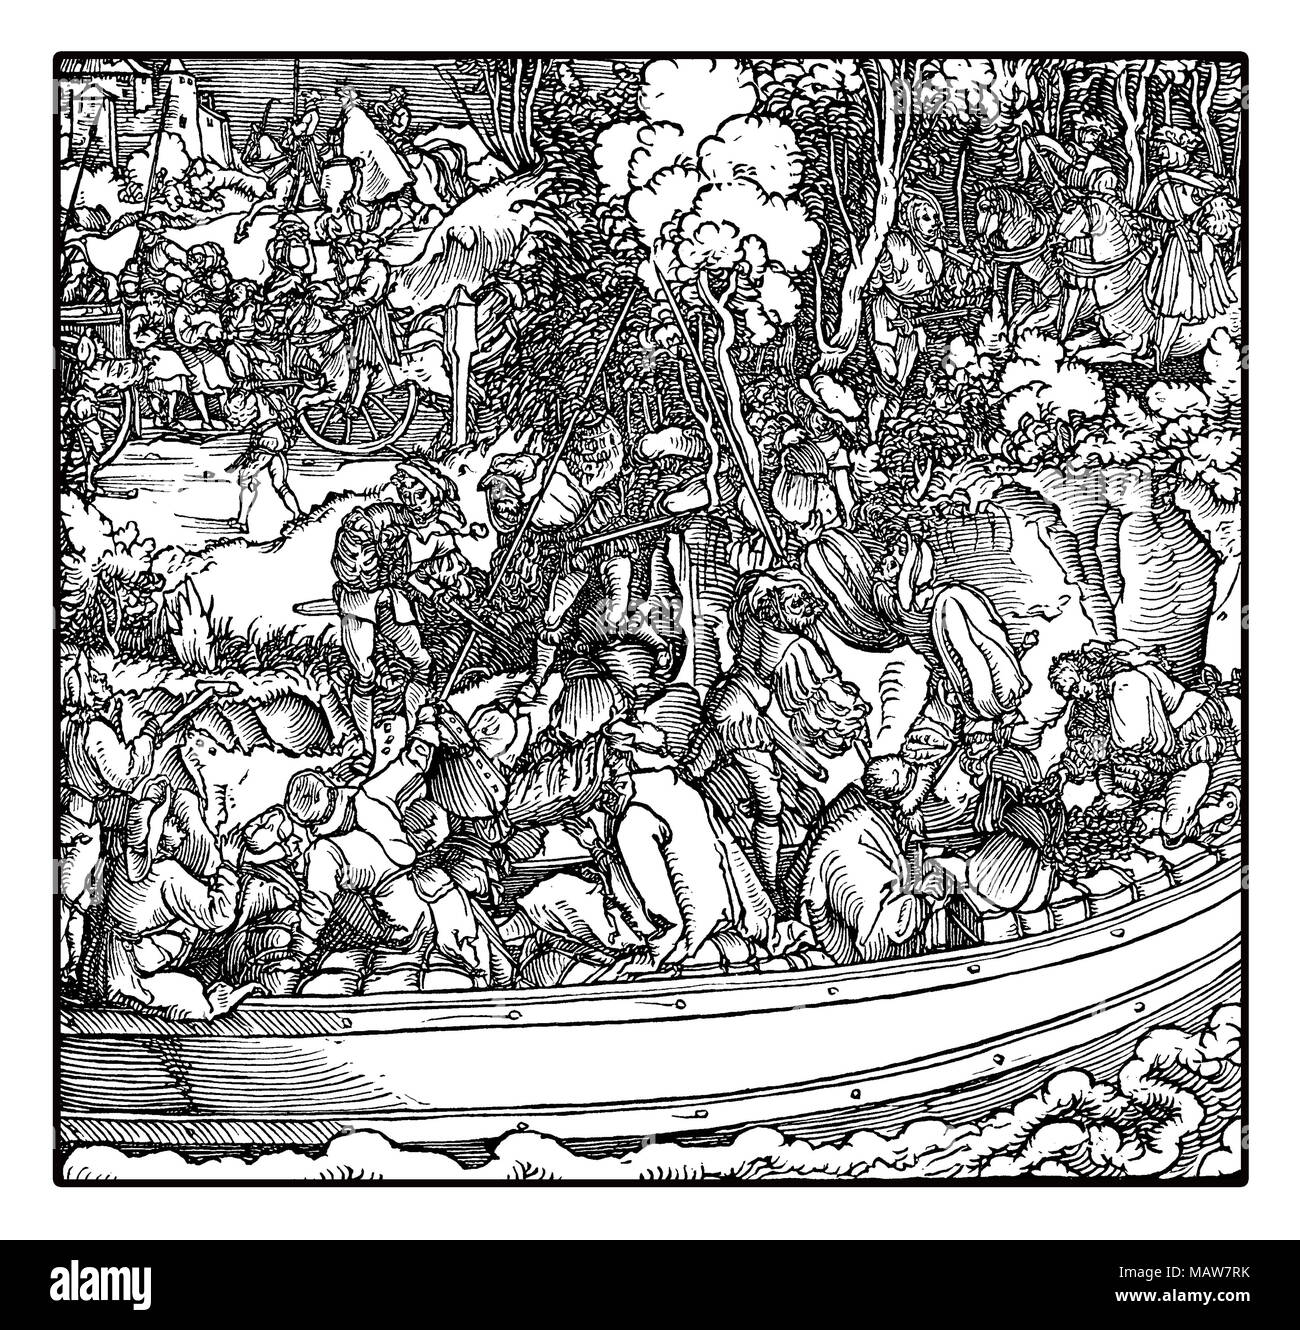 Robber barons tolling station: feudal landowners robbing travelers and merchants on river traffic, by Hans Schauffelein, year 1532 engraving Stock Photo